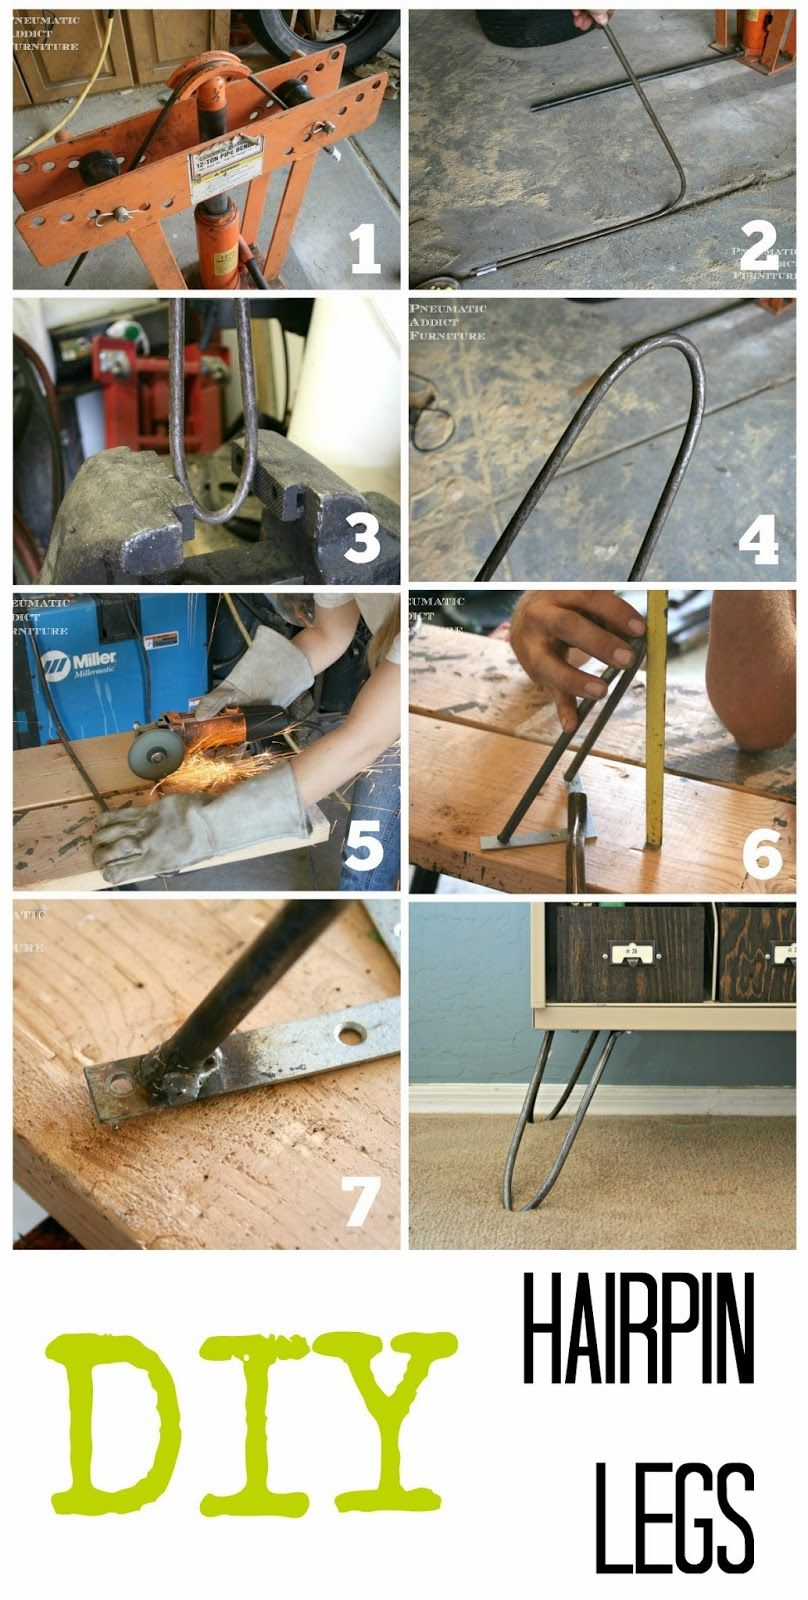 DIY Hairpin Legs Diy, Crate furniture, Diy table